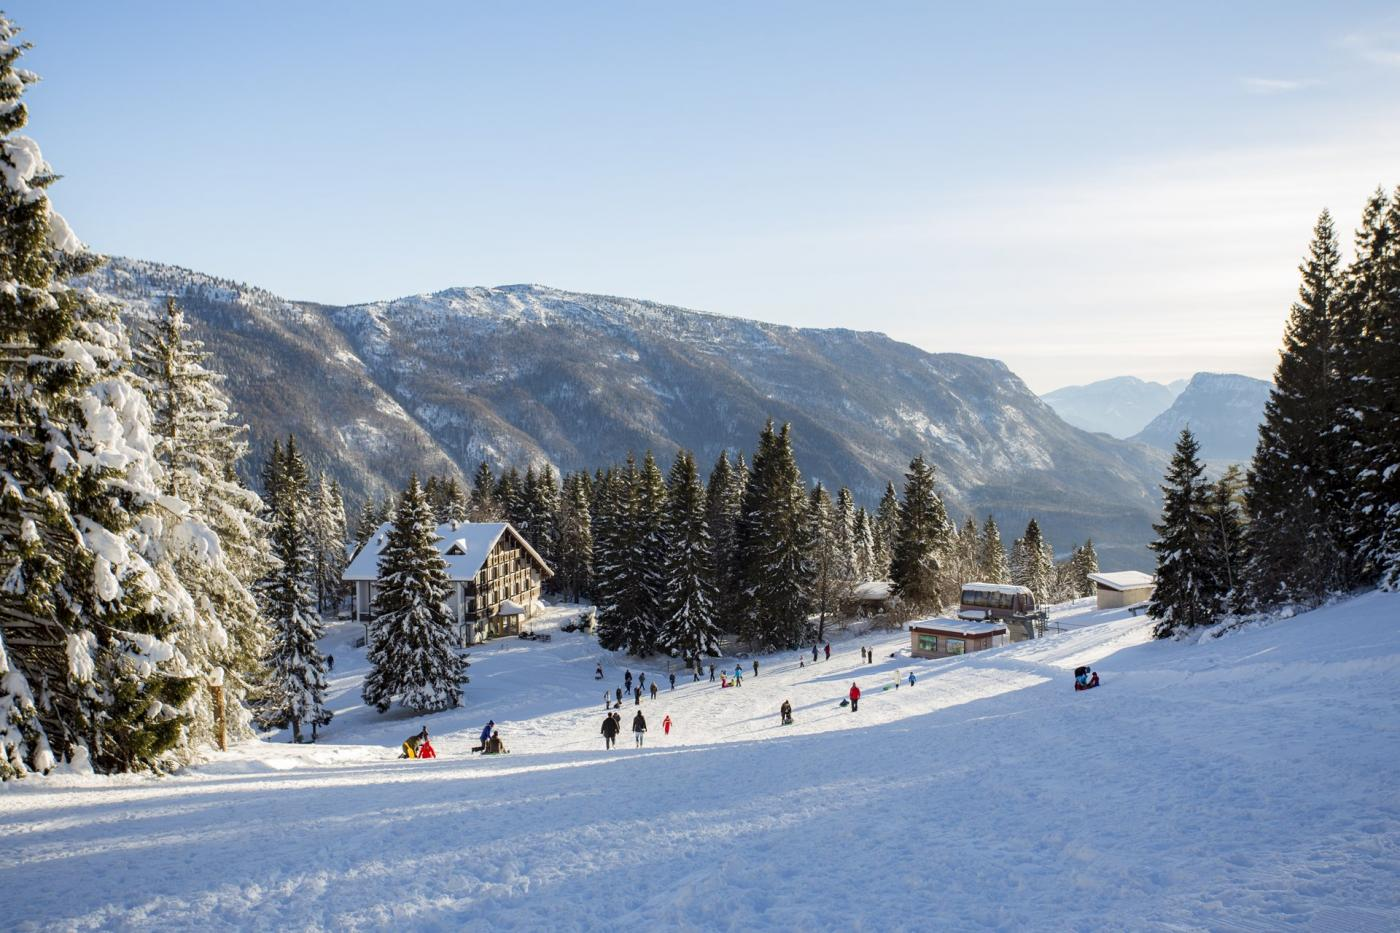 What to do in Dolomiti Paganella if you don't ski<b> </b>